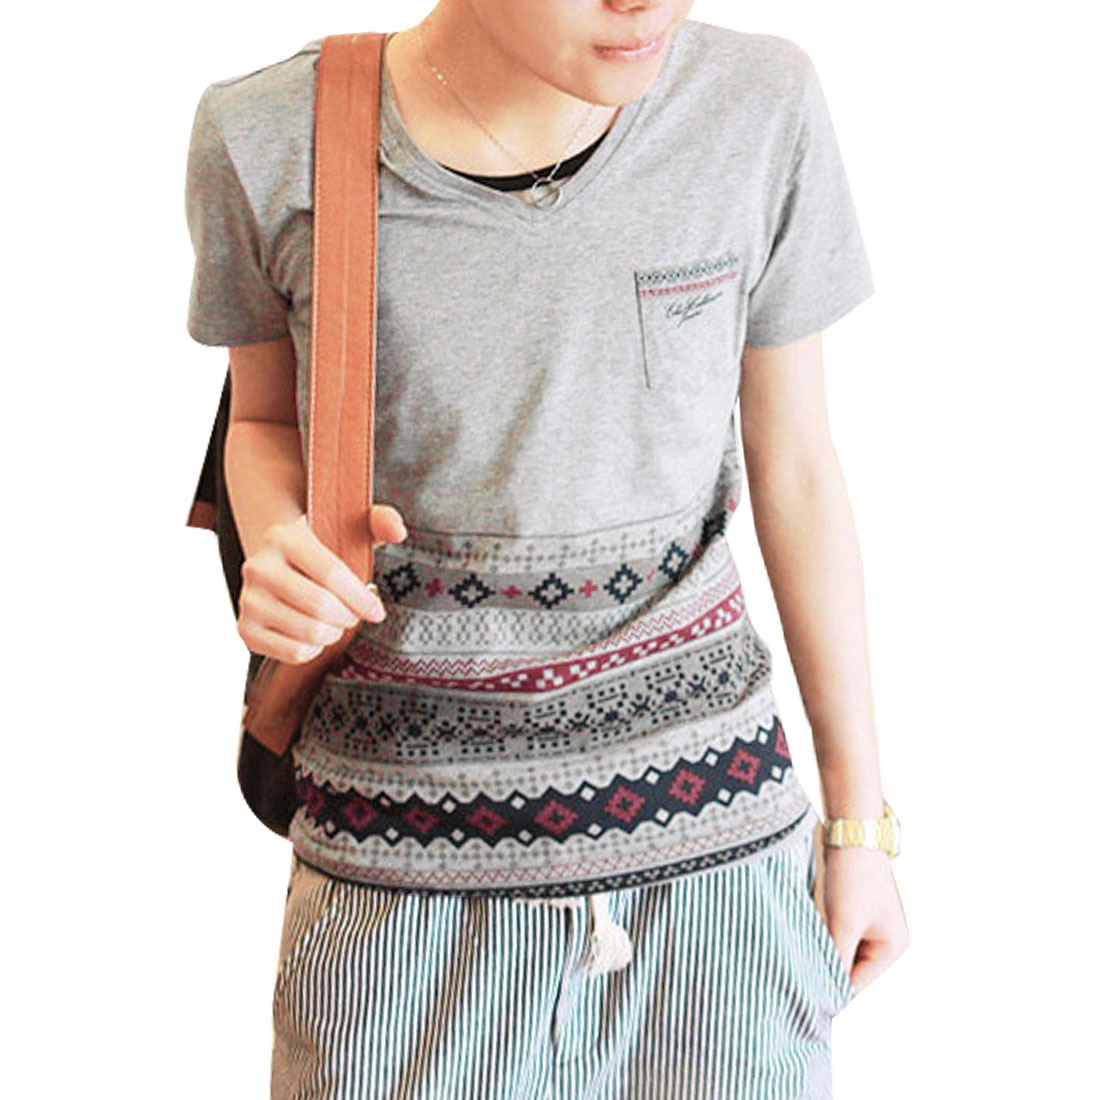 Man Jacquard Print Patch Pocket Front T-Shirt Blouse Top Gray S